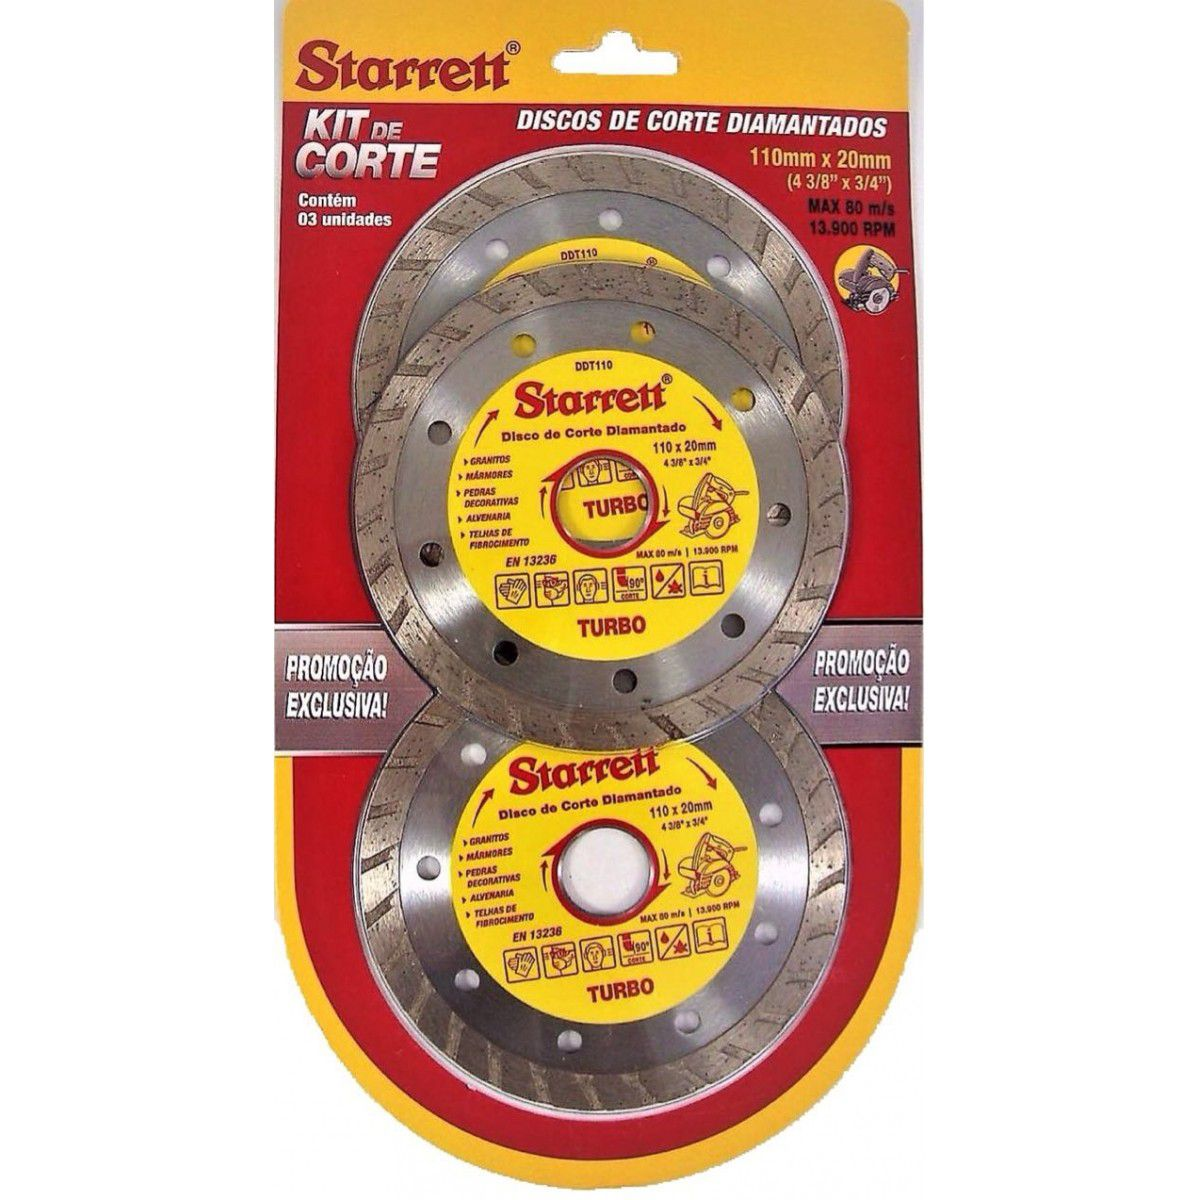 Kit Discos de Corte Diamantados Misto 110x20mm - Starrett